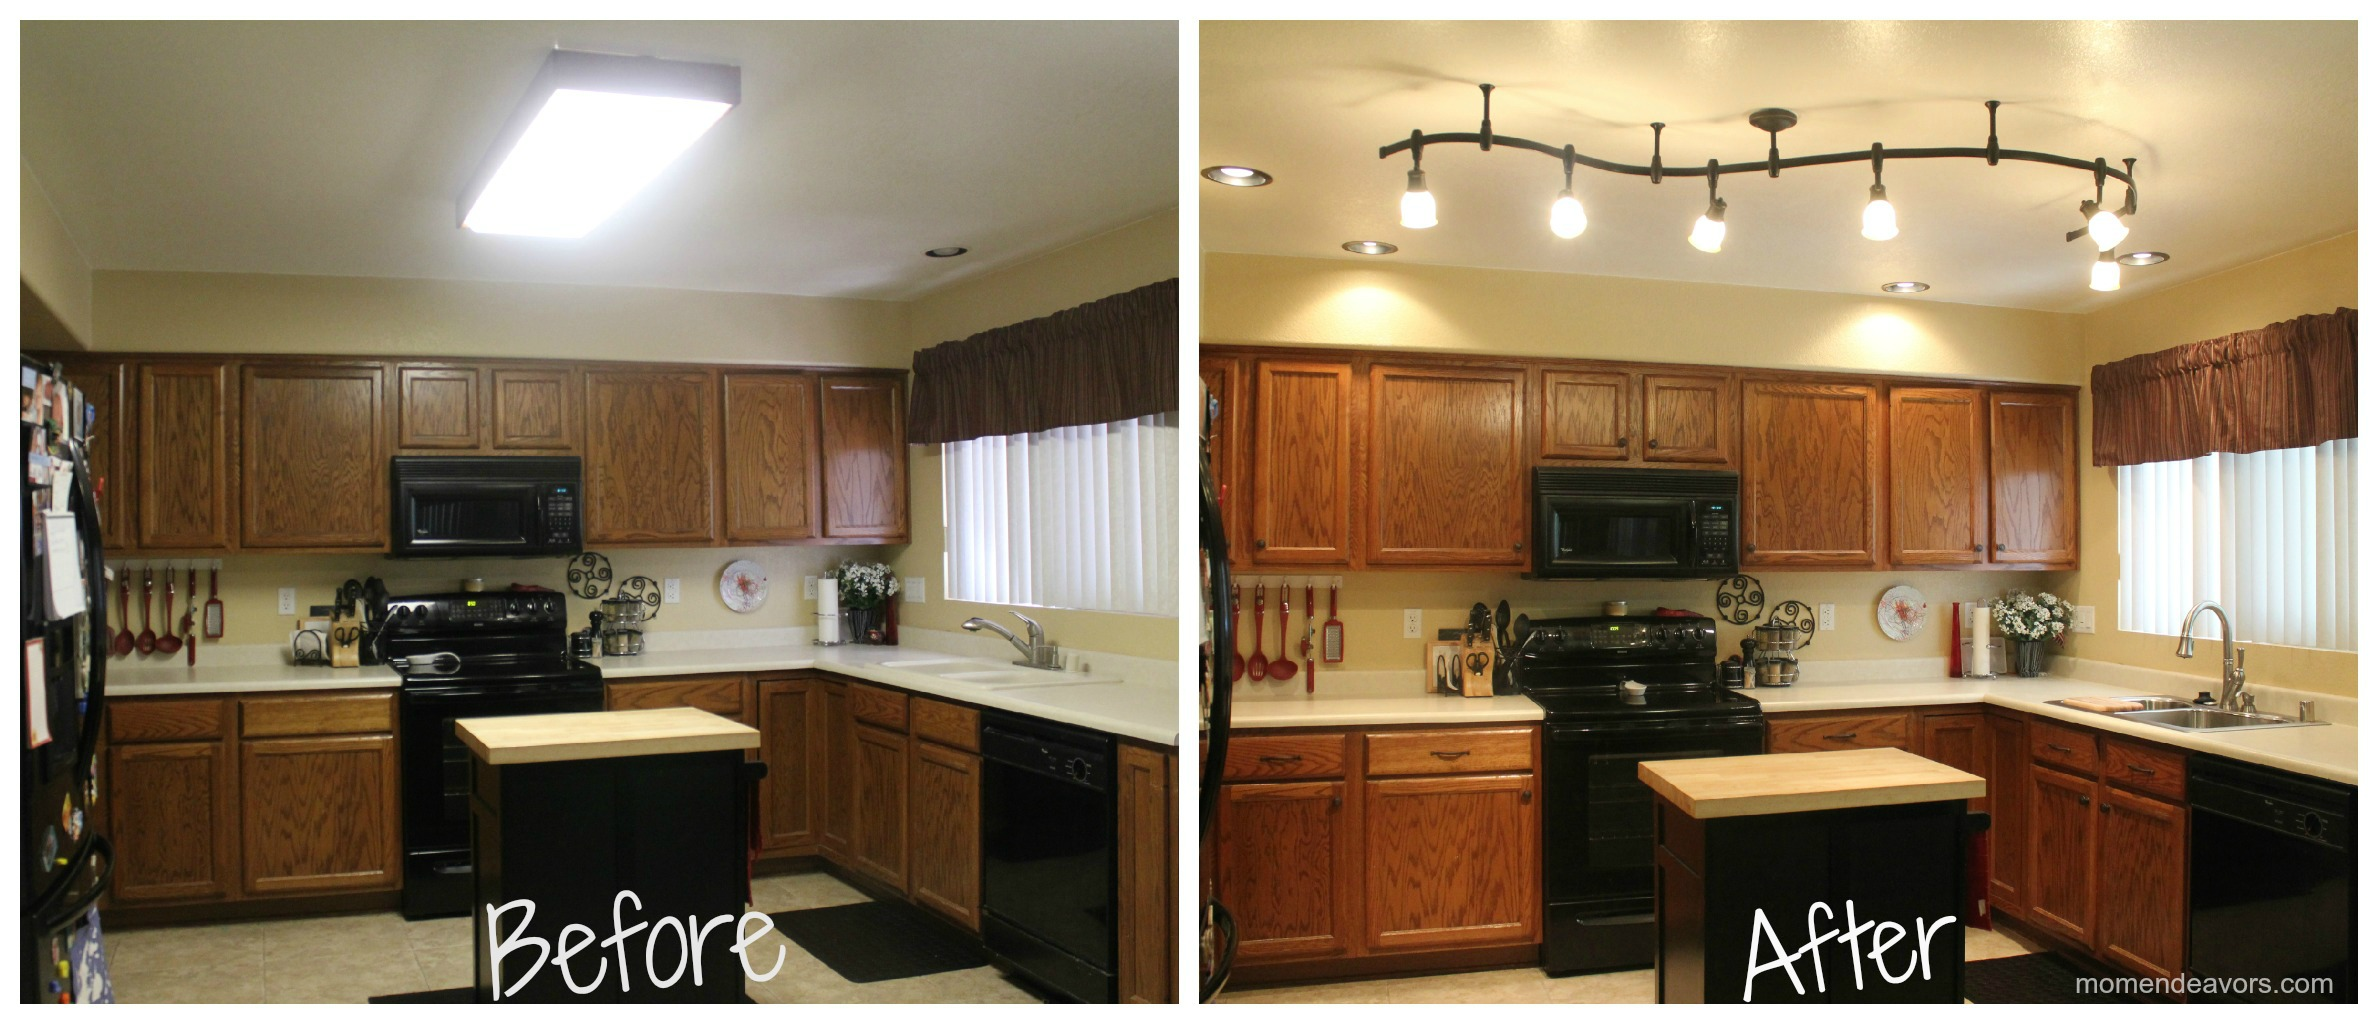 mini kitchen remodel kitchen remodels It